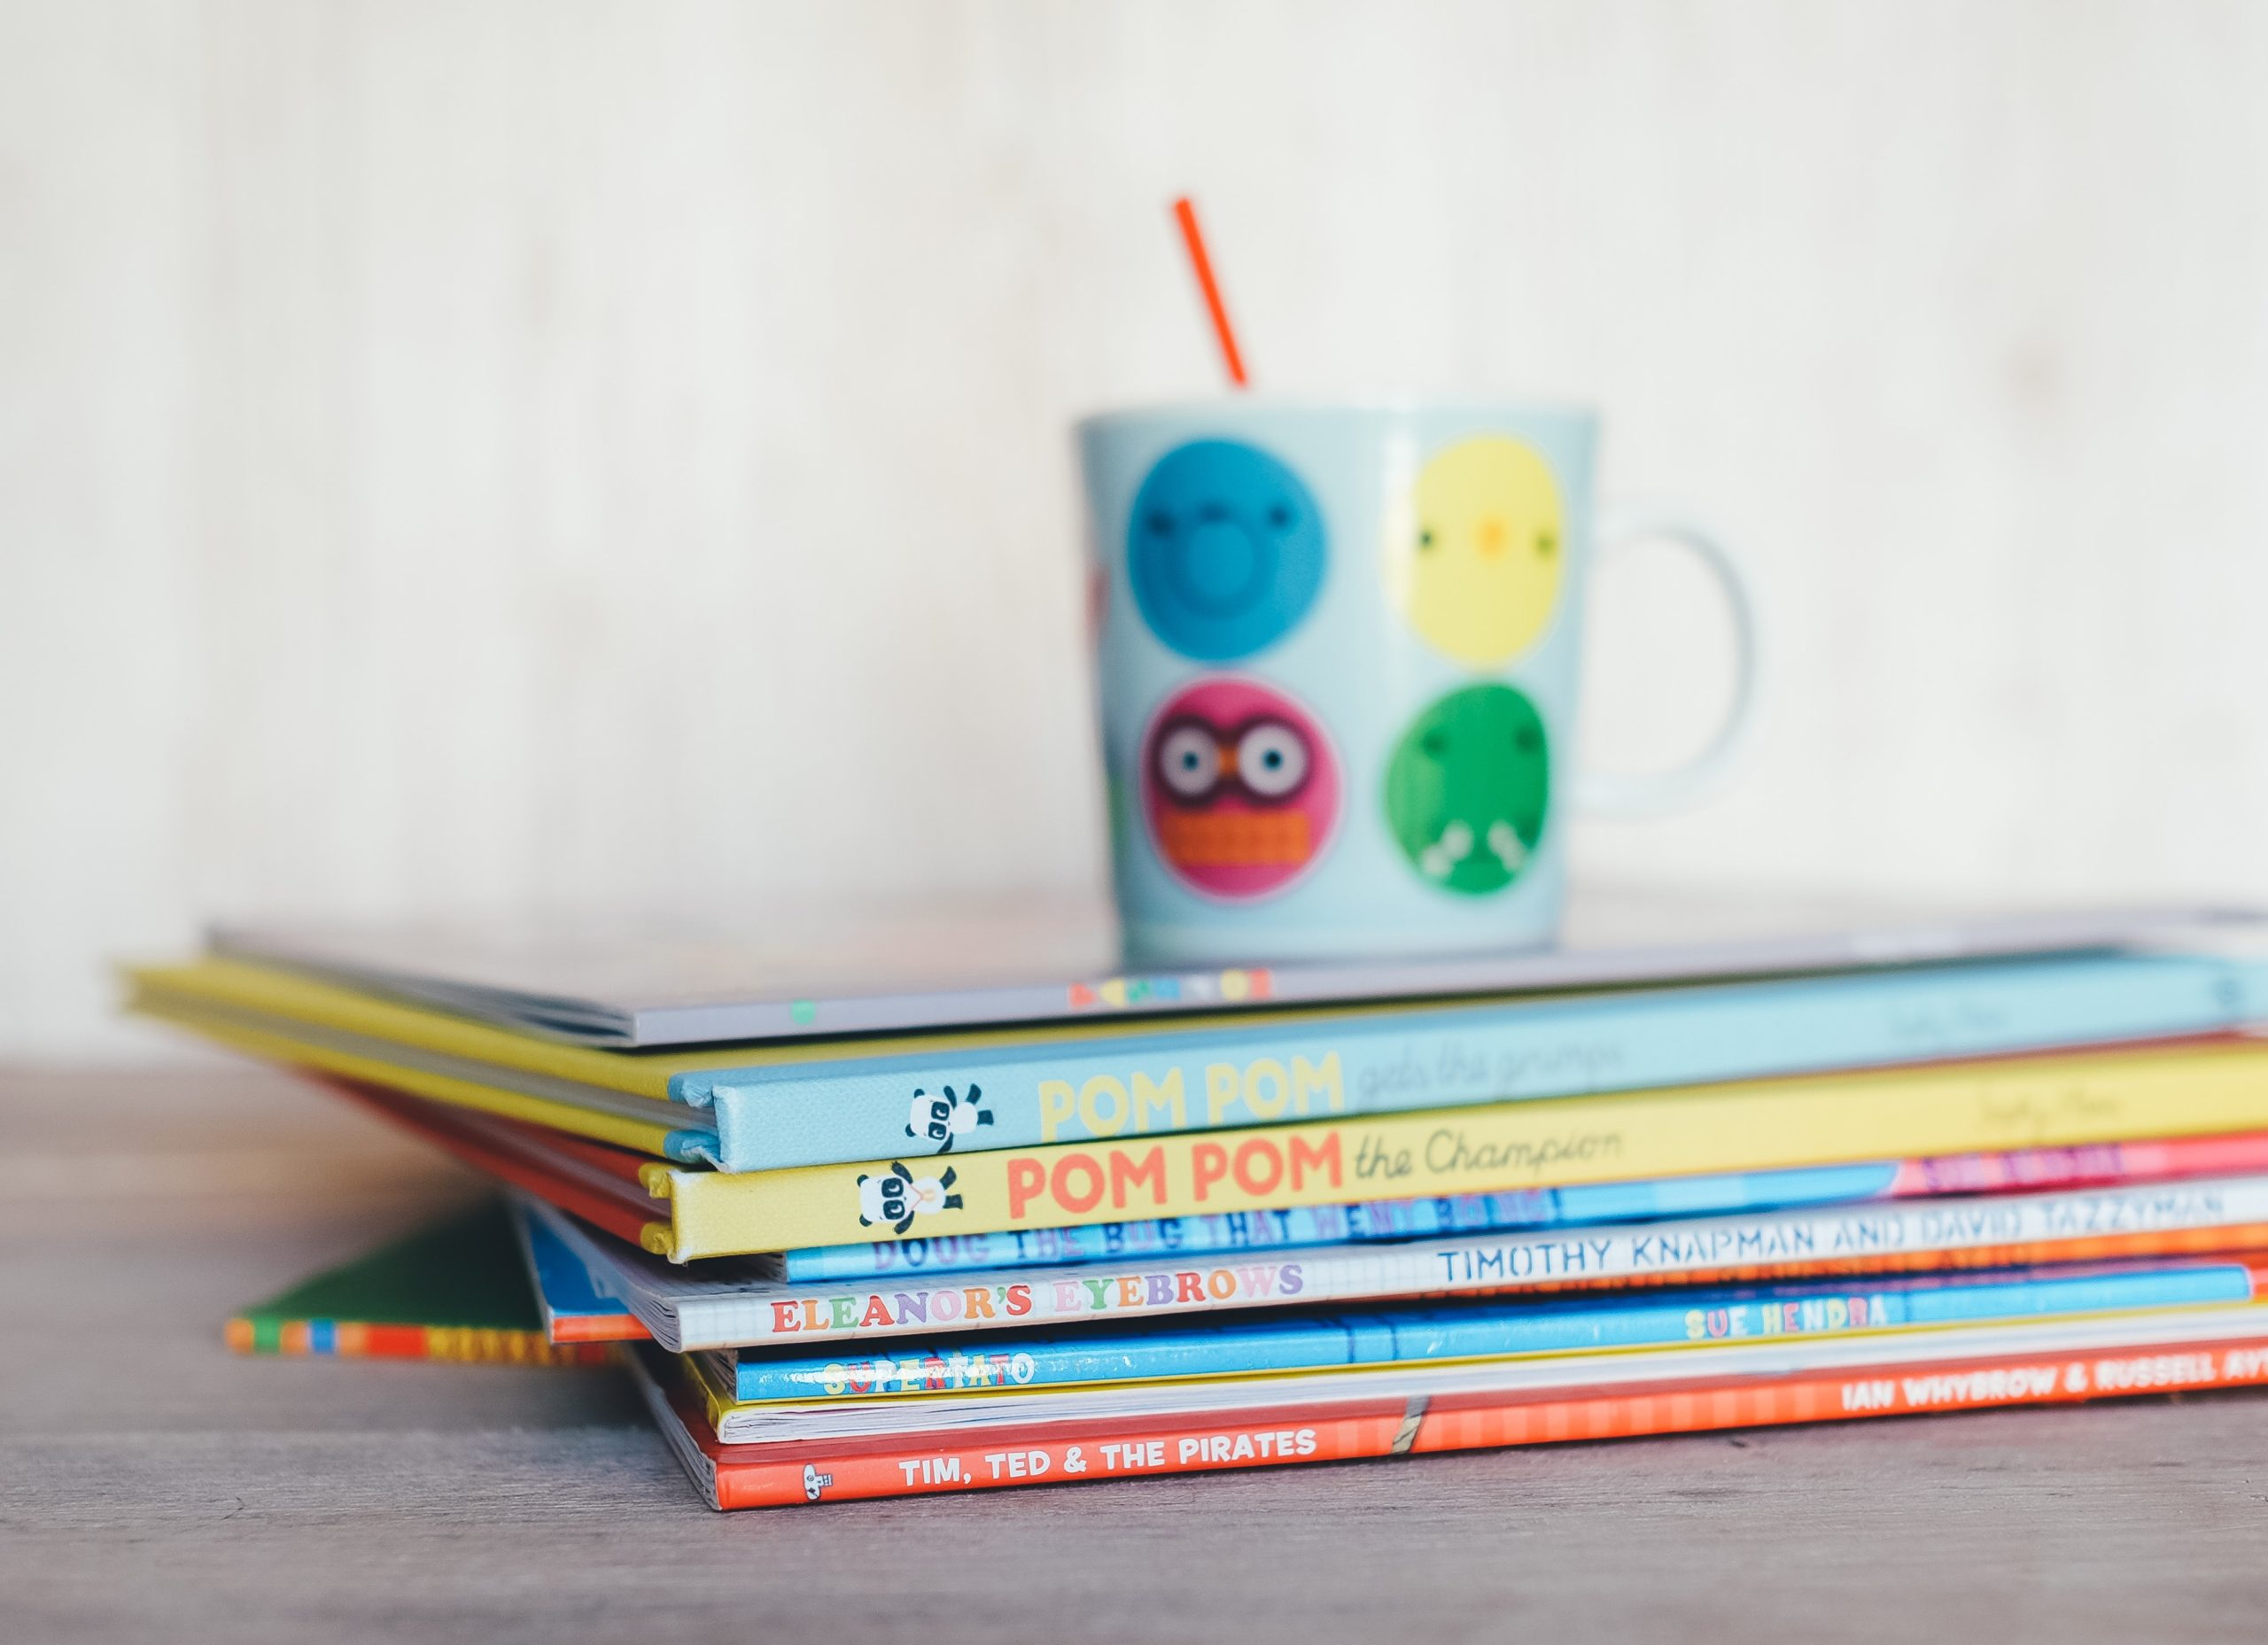 Book Club: Enjoy These Everyday Heroes